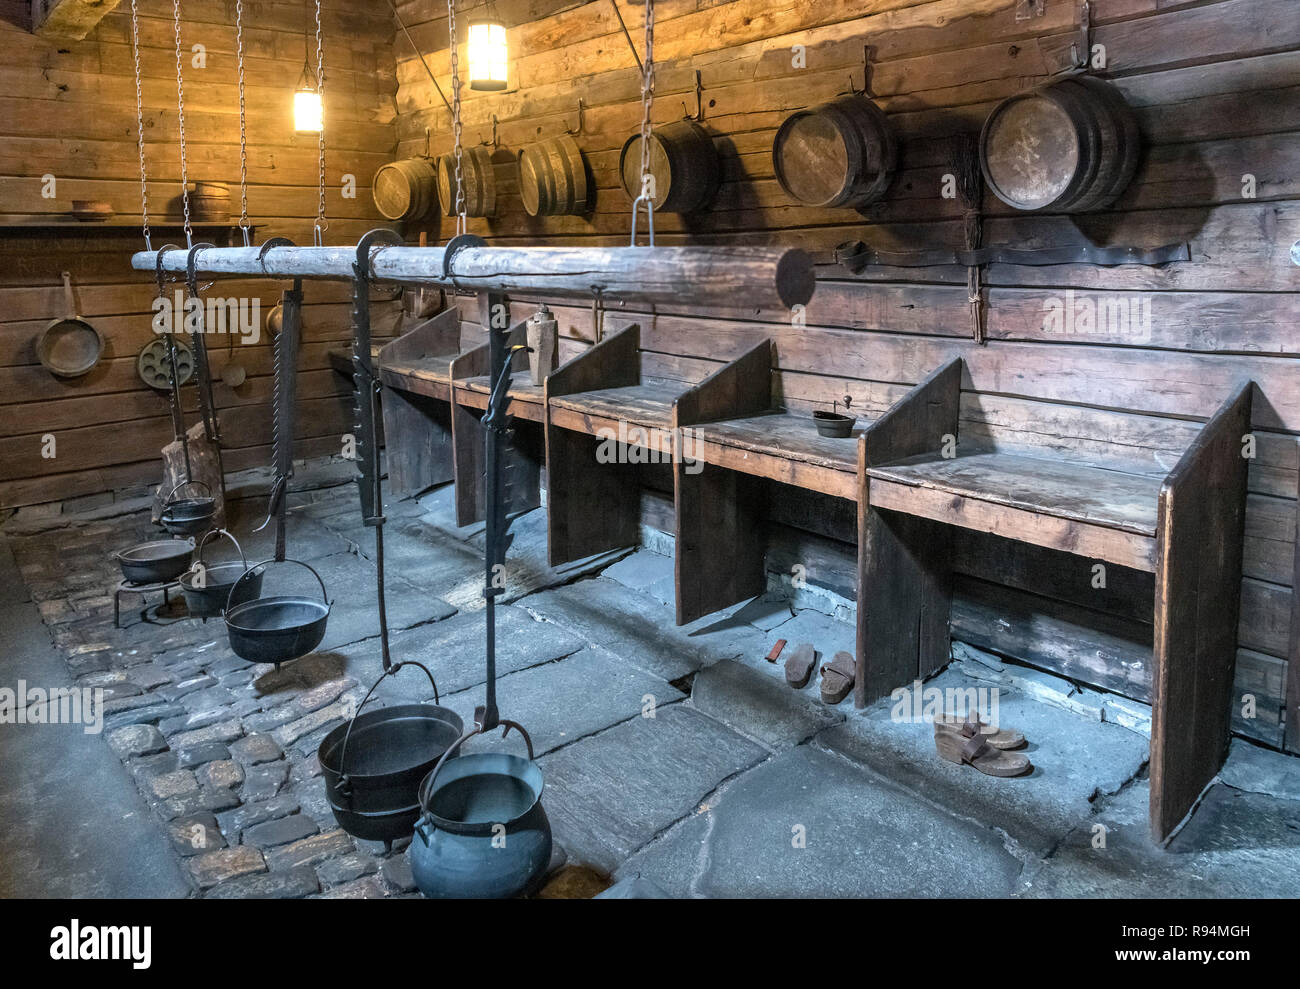 The cookhouse at the Schøtstuene, an assembly hall which is part of the Hanseatic Museum (Det Hanseatiske Museum), Bergen, Norway - Stock Image